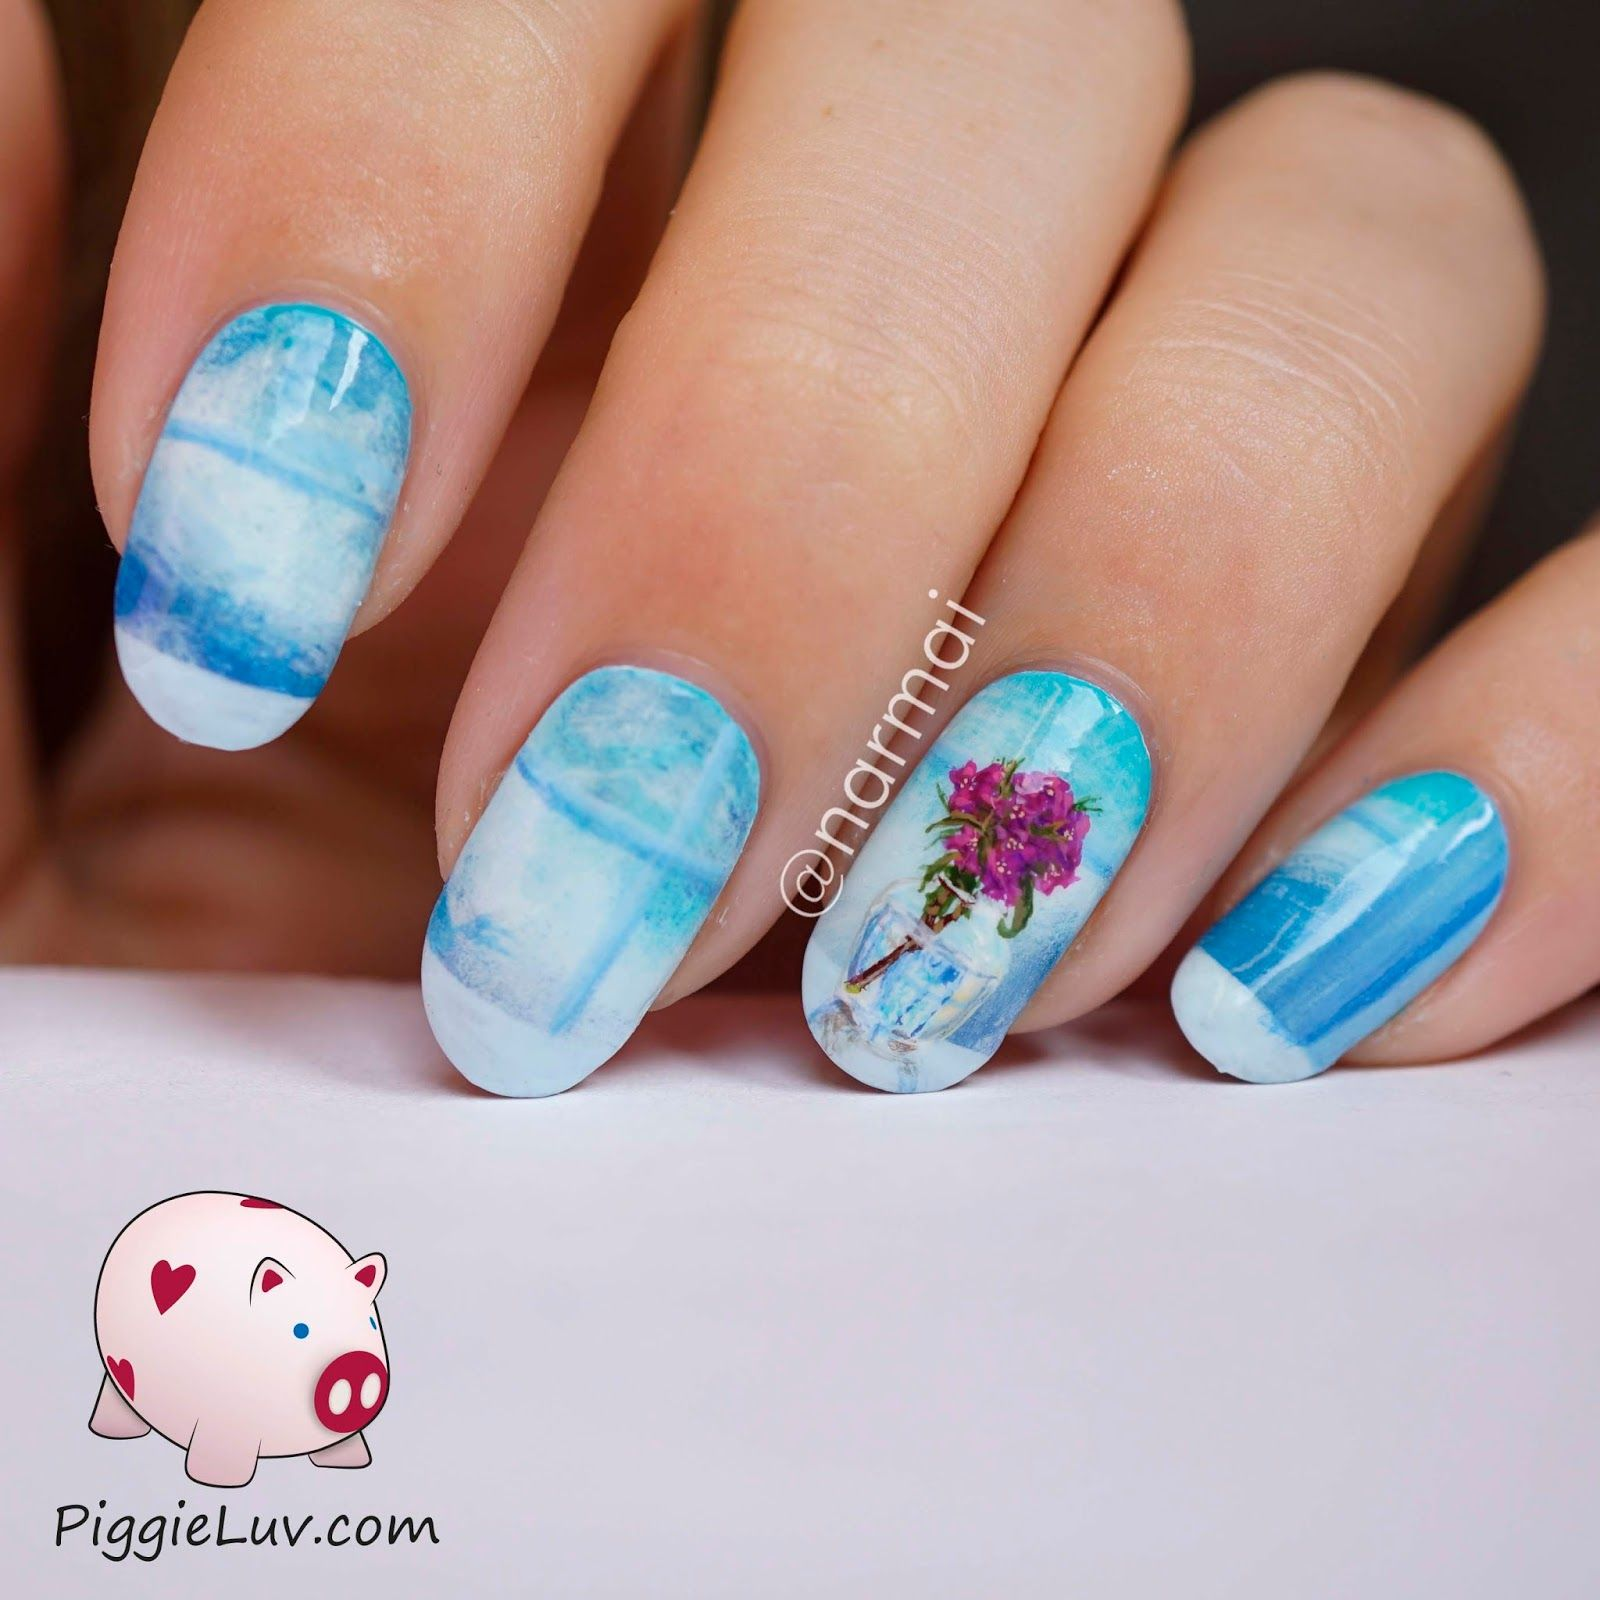 Freehand glass vase nail art | Pinterest